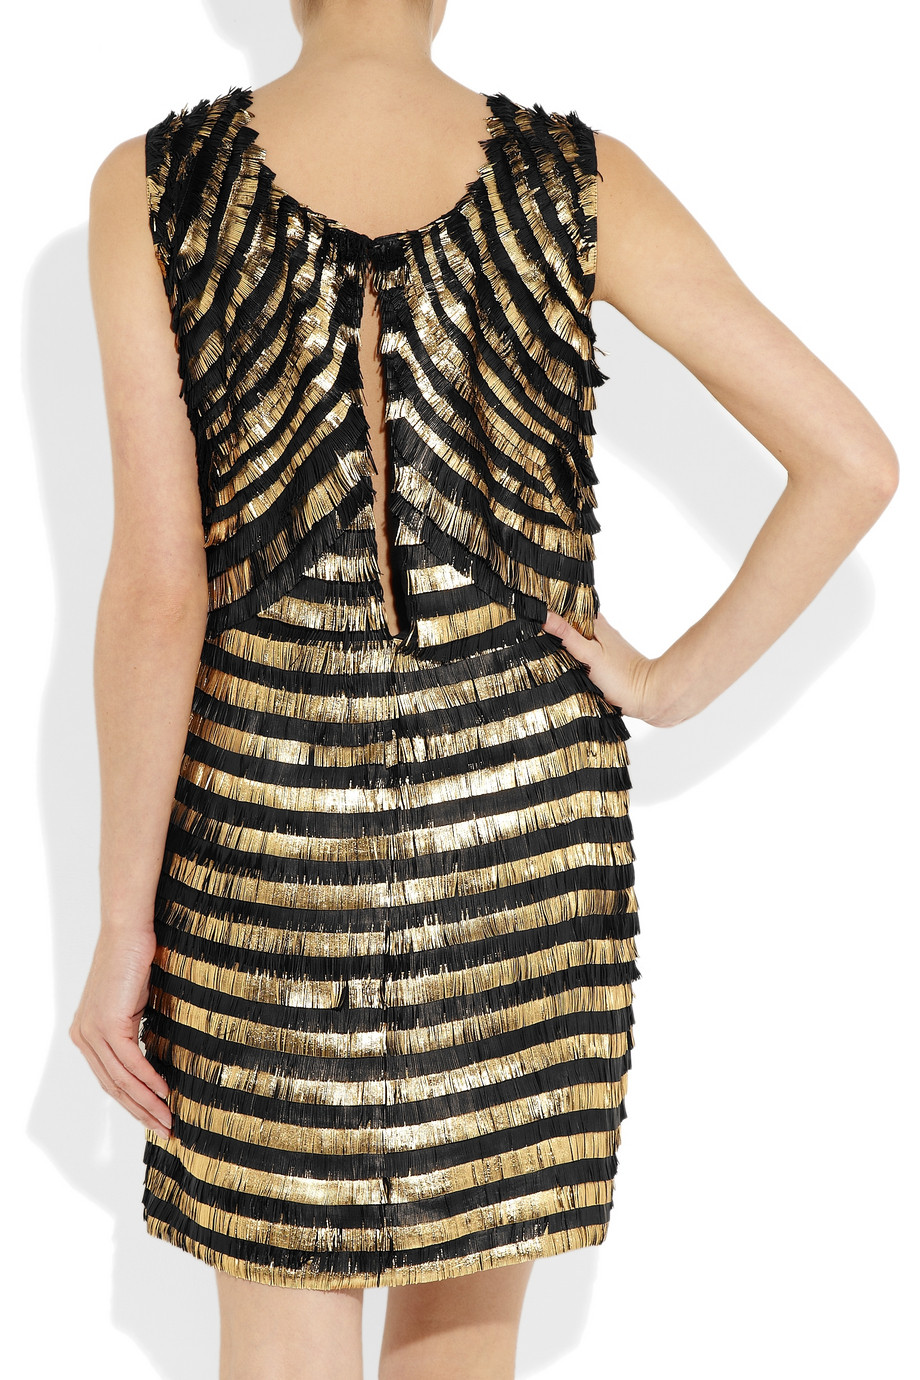 Gucci Metallic Striped Fringed Leather Dress In Black Lyst